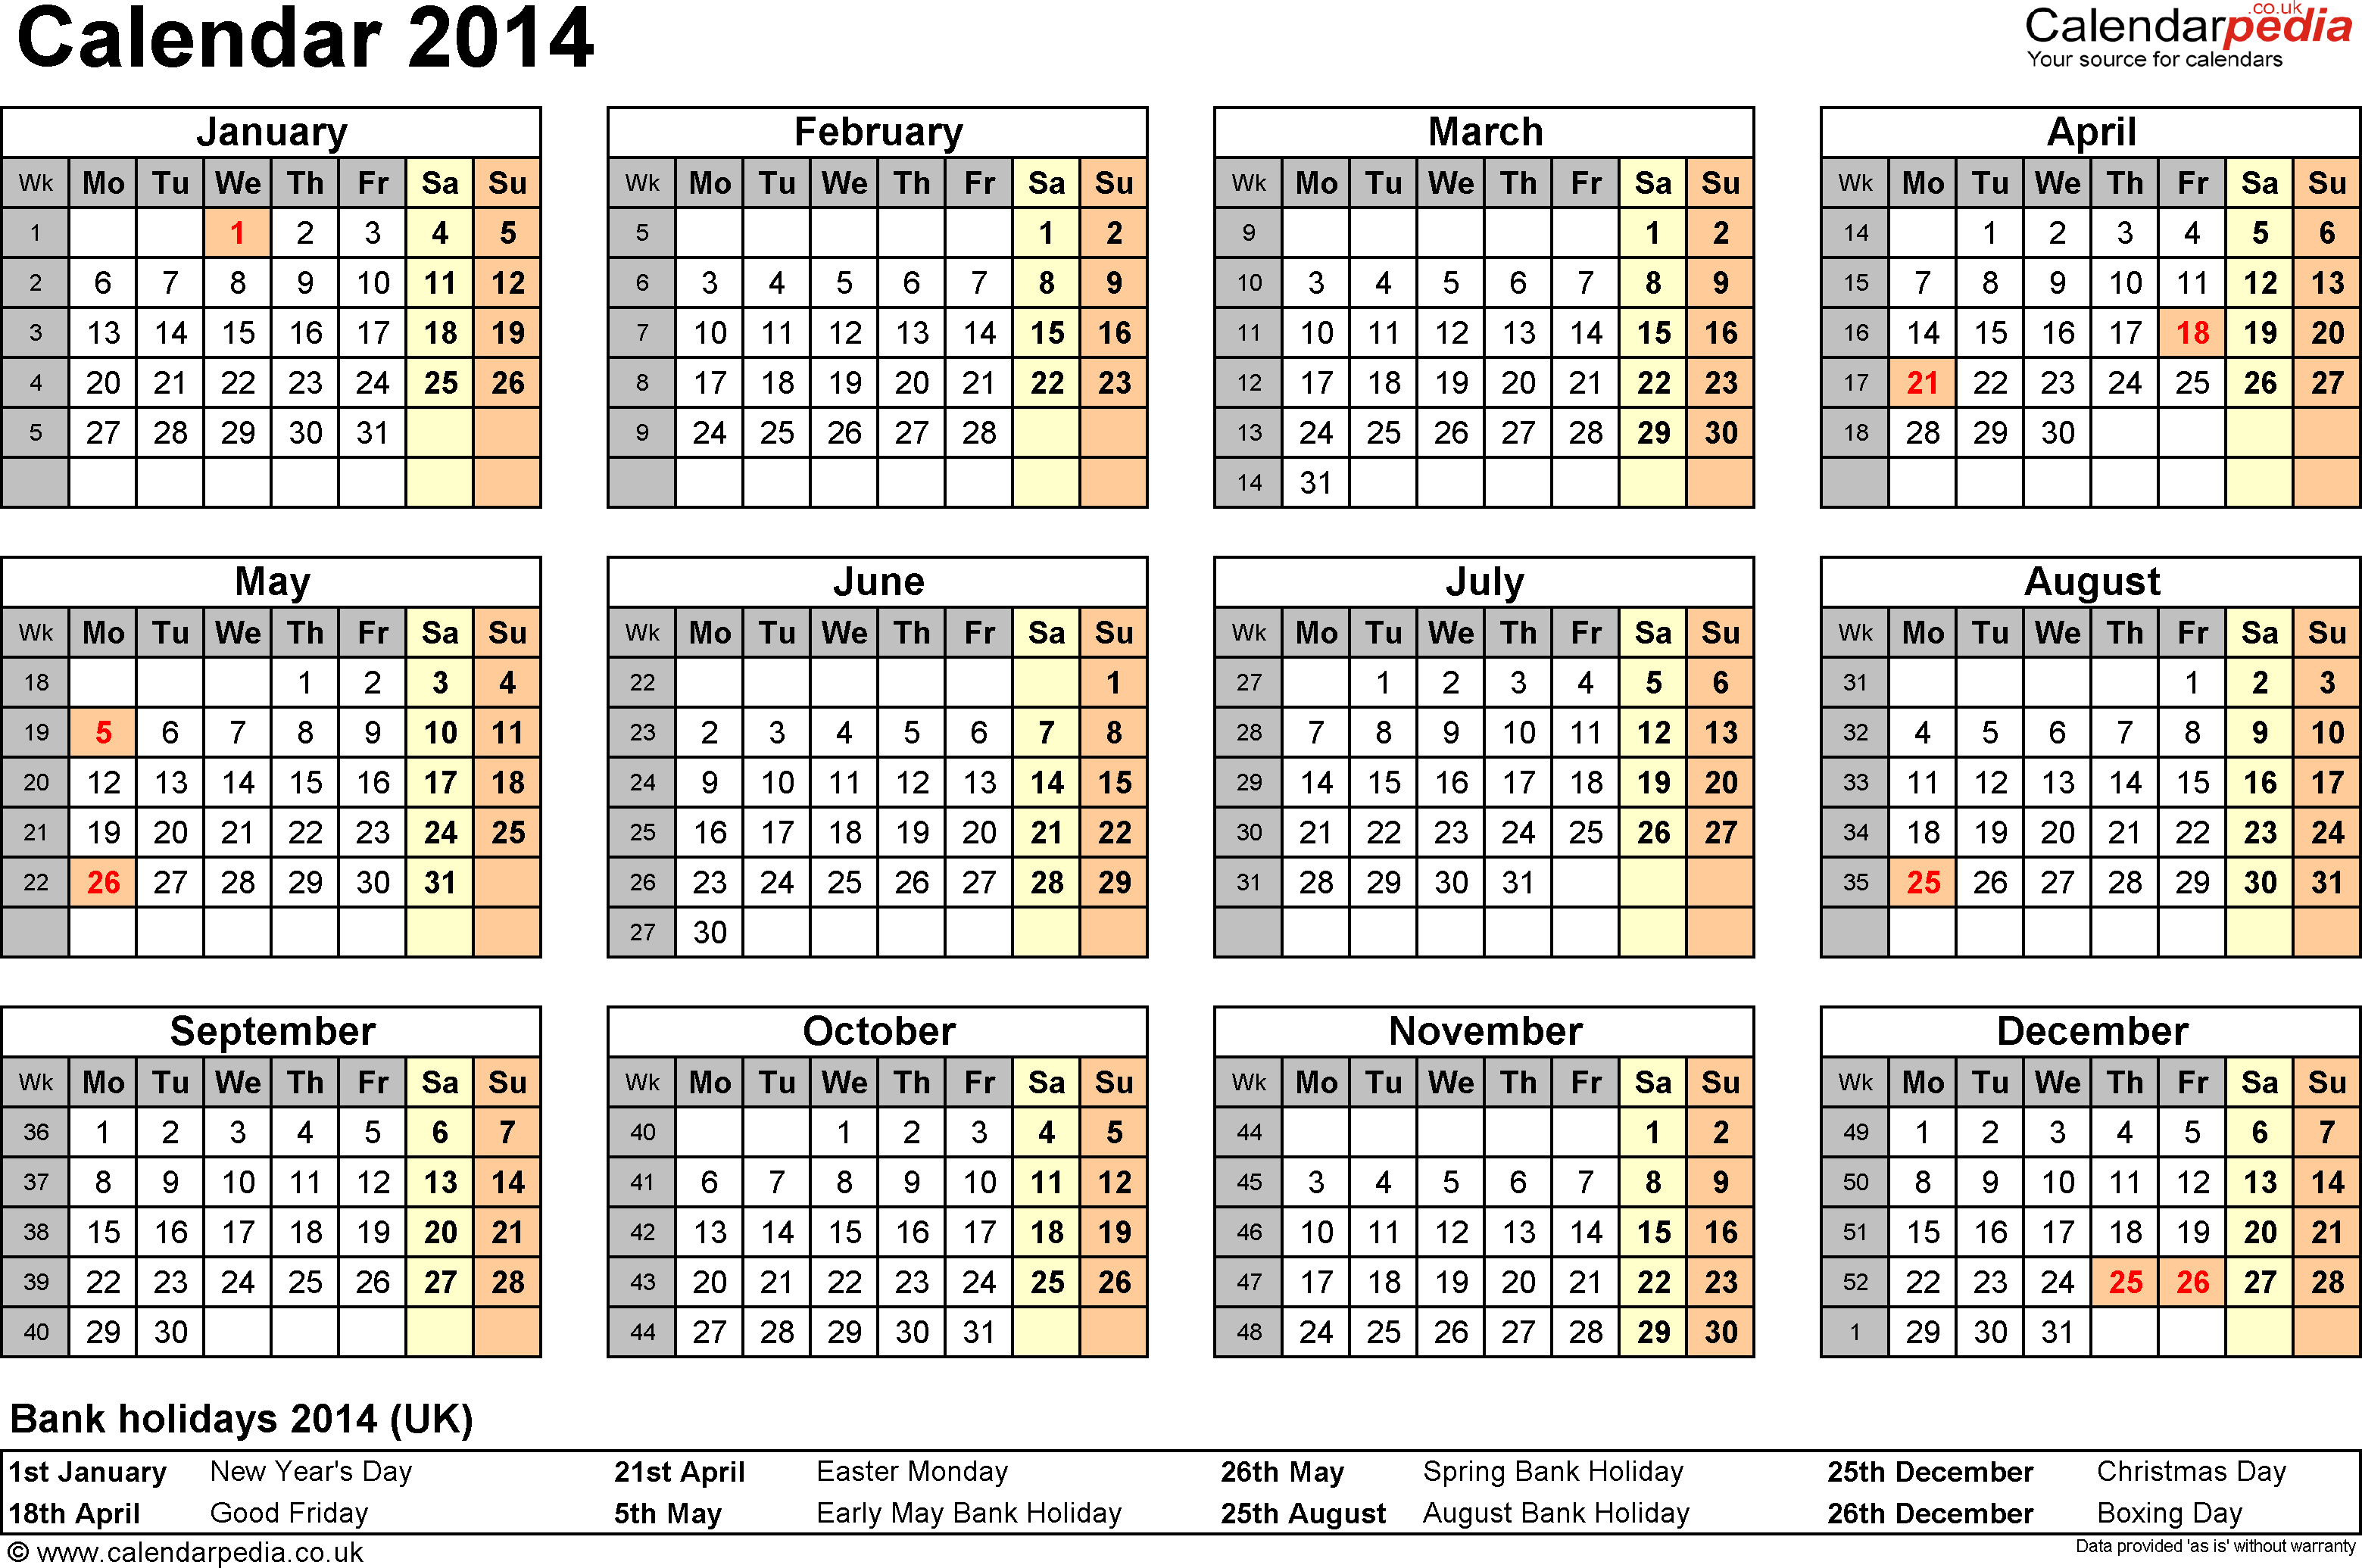 Download Template 8: Yearly calendar 2014 as Word template, year overview, 1 page